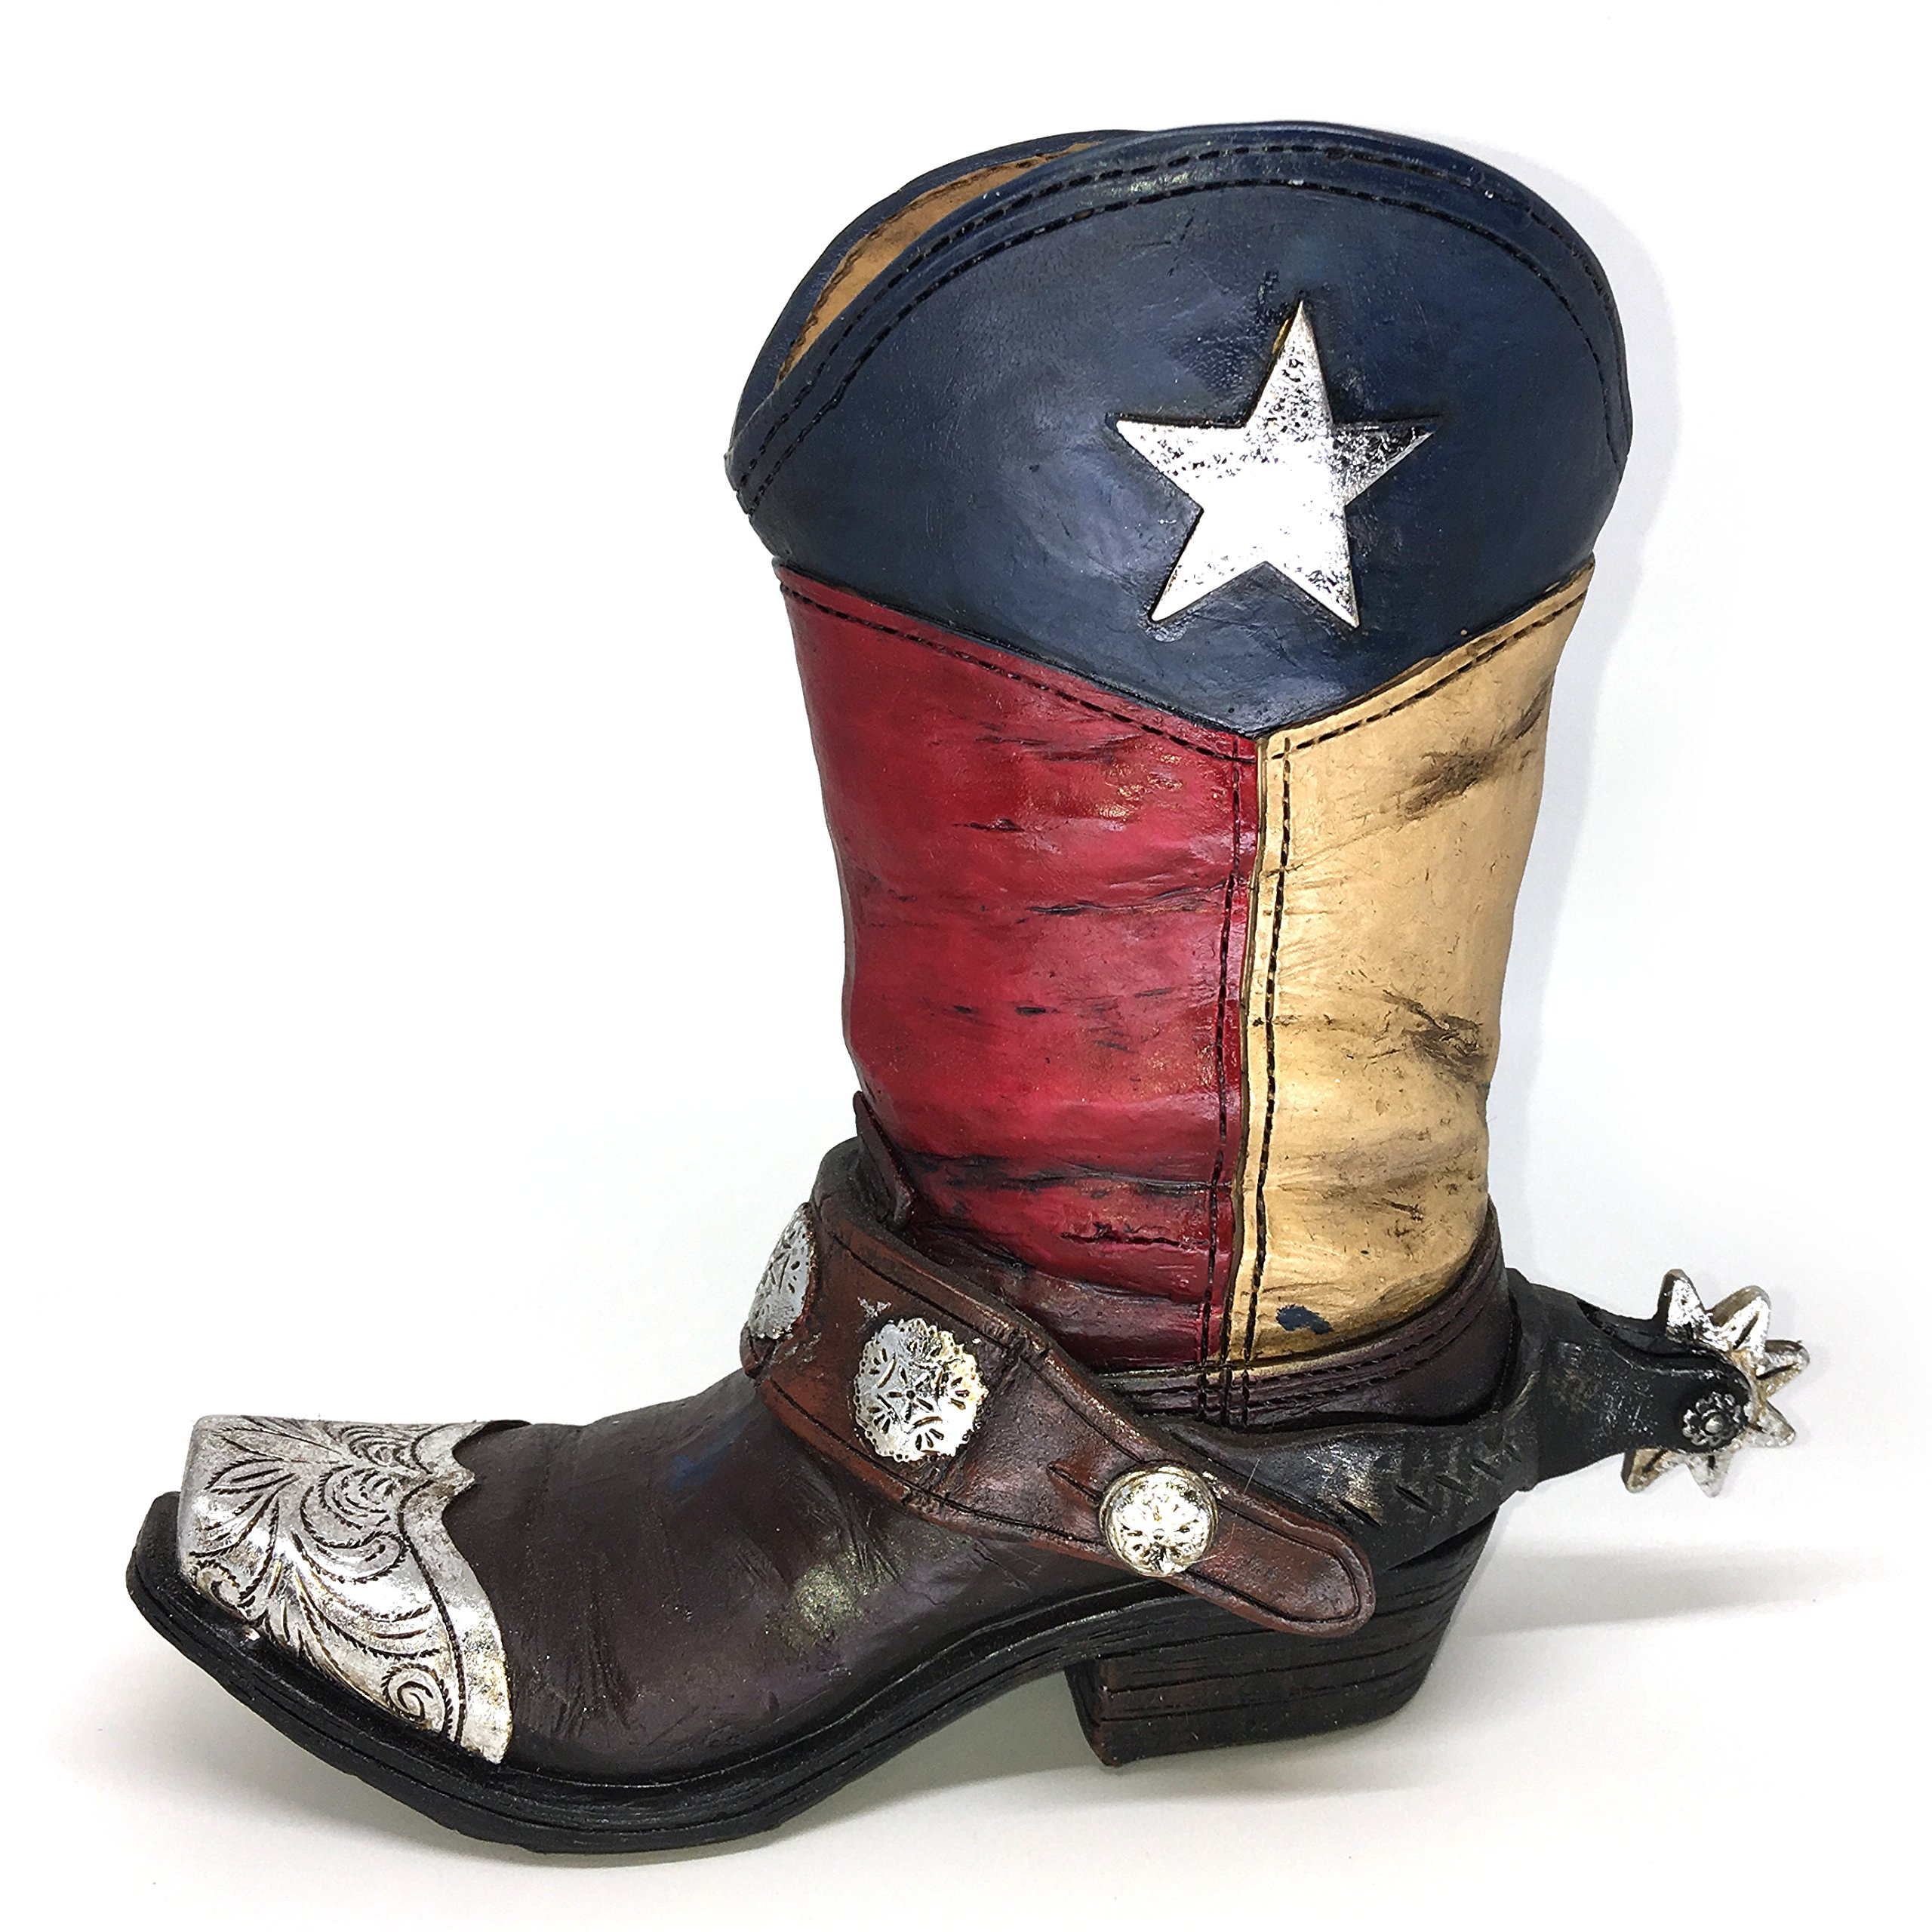 Texas Lone Star Cowboy Boot with Spur Small Vase Planter for Western Decor by Colors of Rainbow (Image #2)